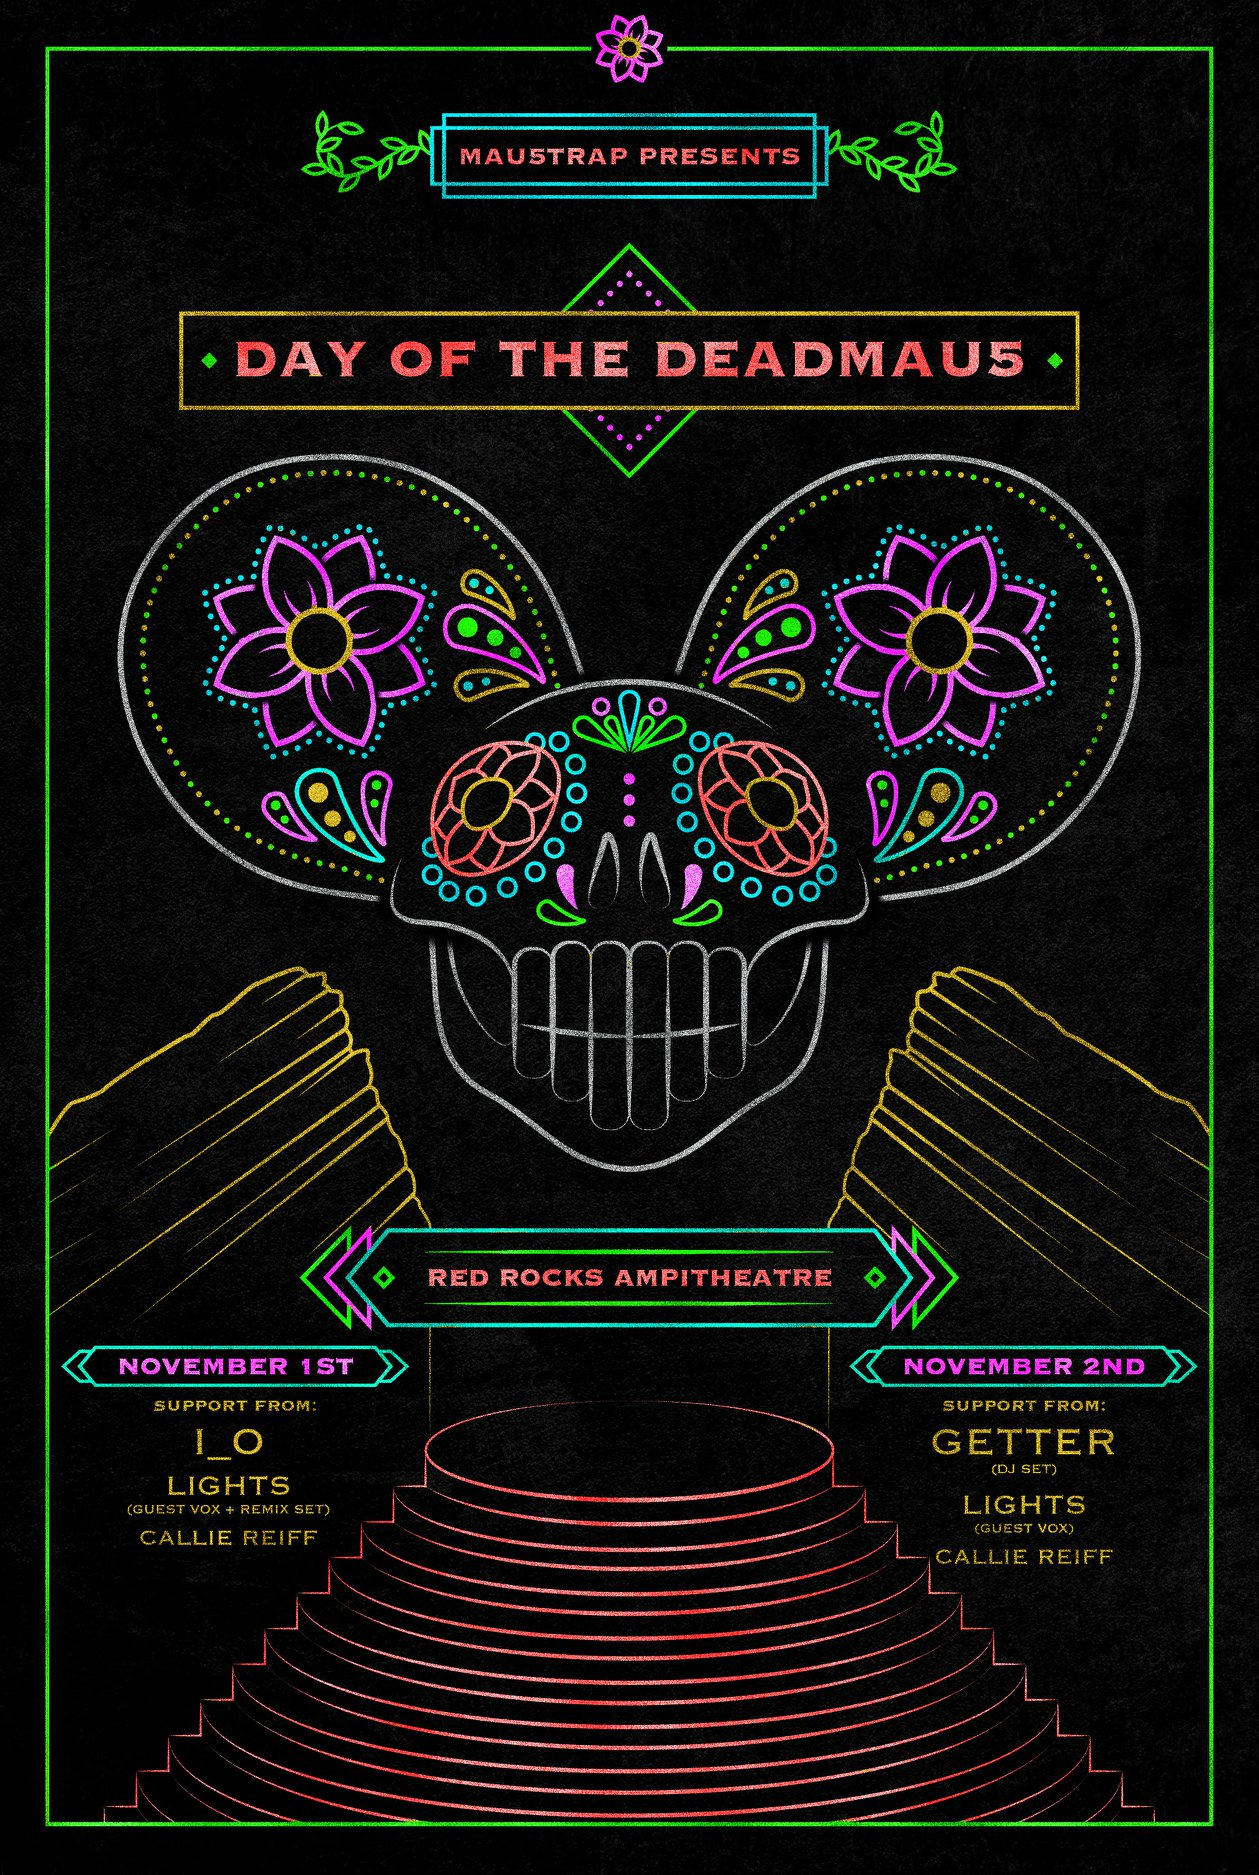 Day of the Deadmau5 Lineup